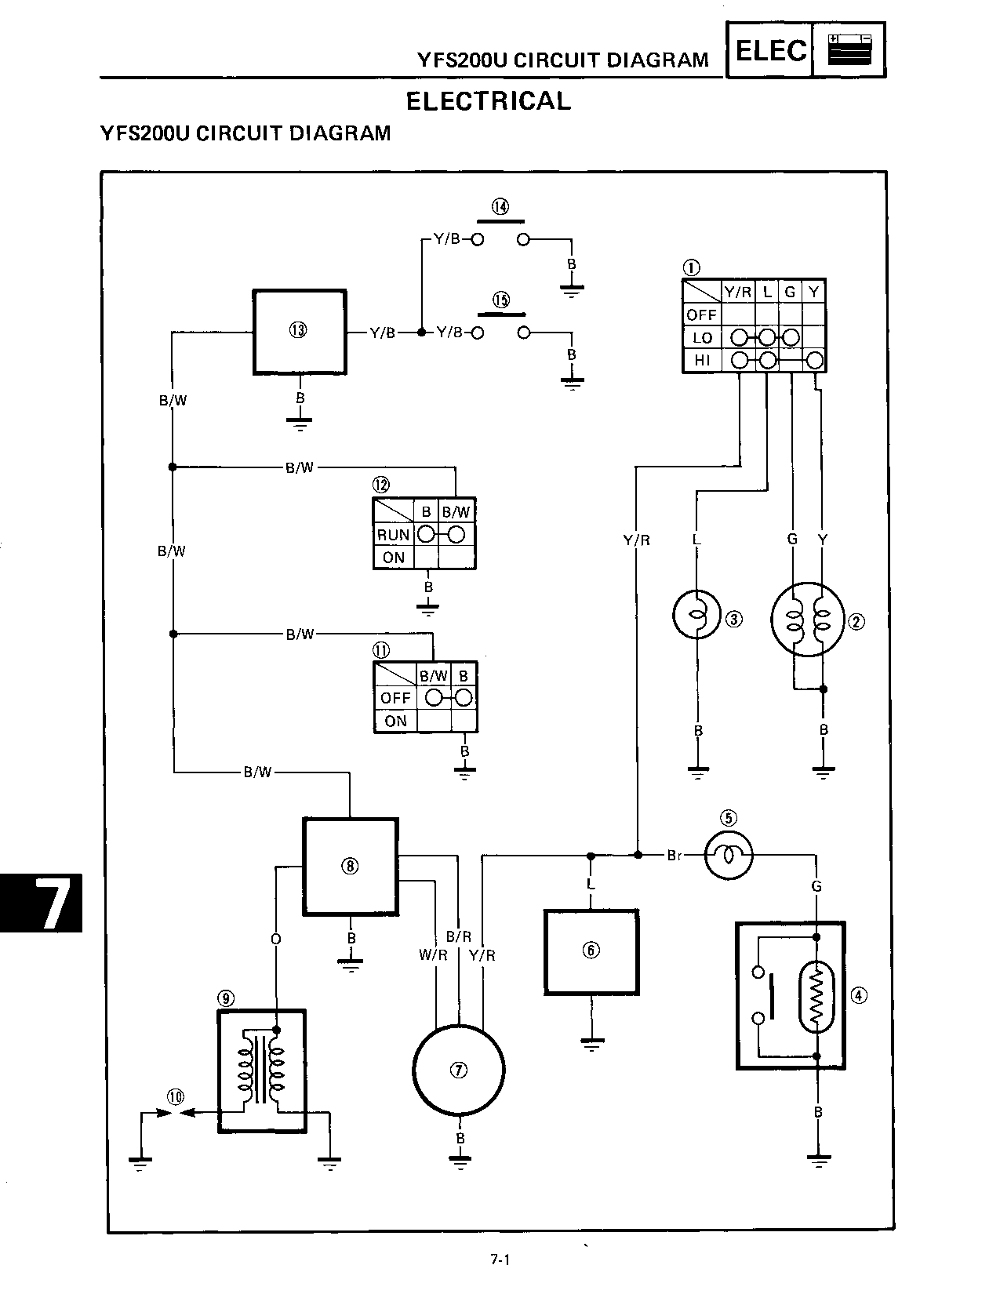 Diagram Yamaha Blaster Wiring Diagram Full Version Hd Quality Wiring Diagram Diagramuhligy Ecoldo It